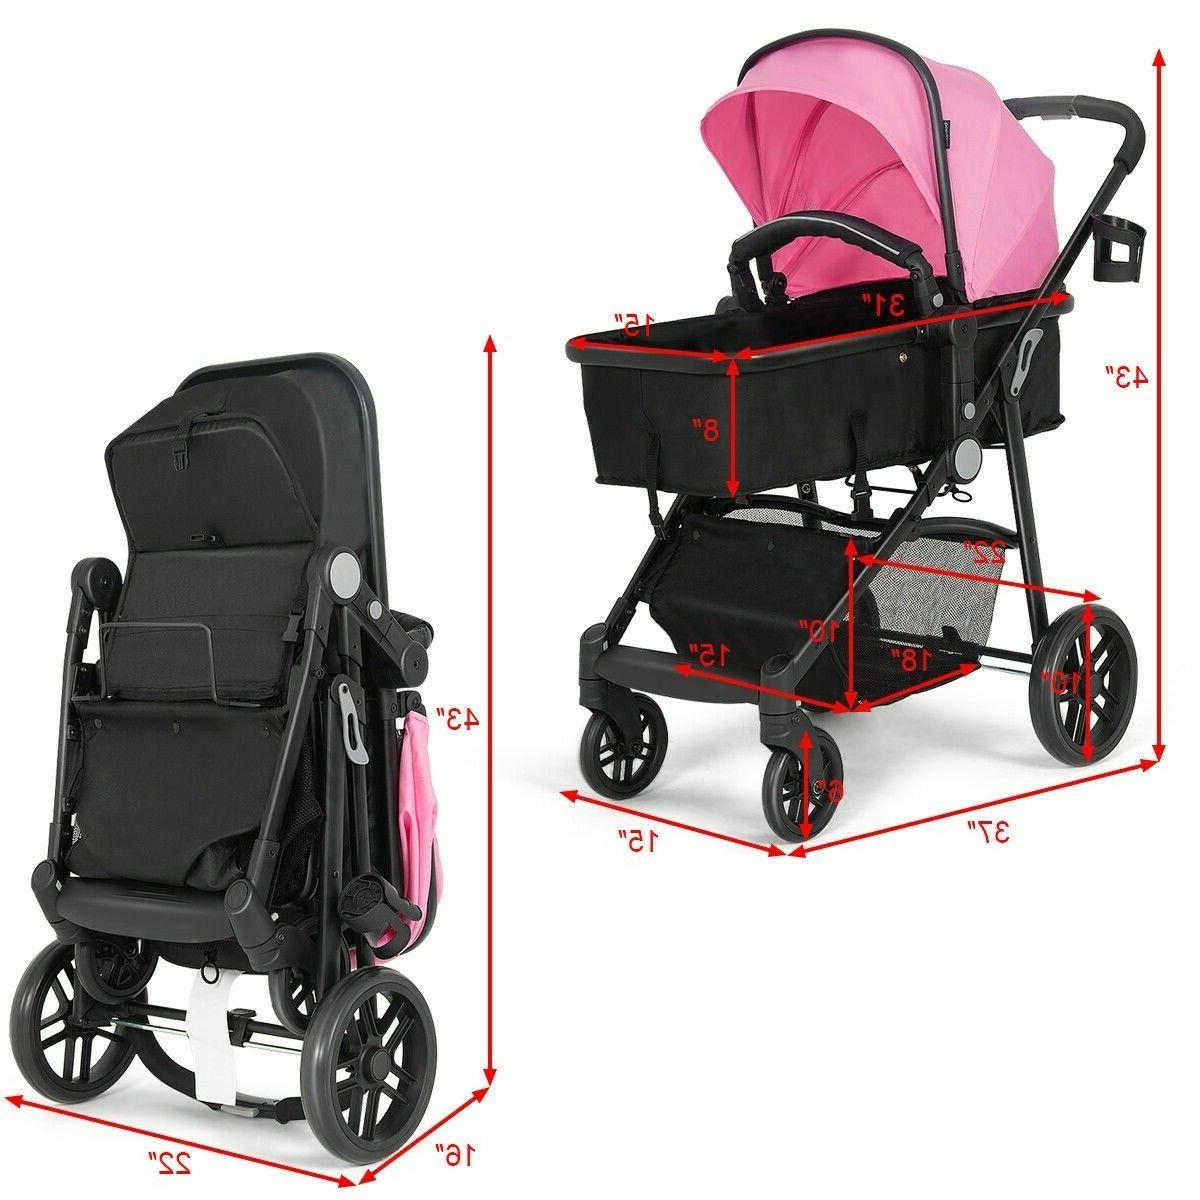 Newborn Foldable Strollers System 2 in 1 New